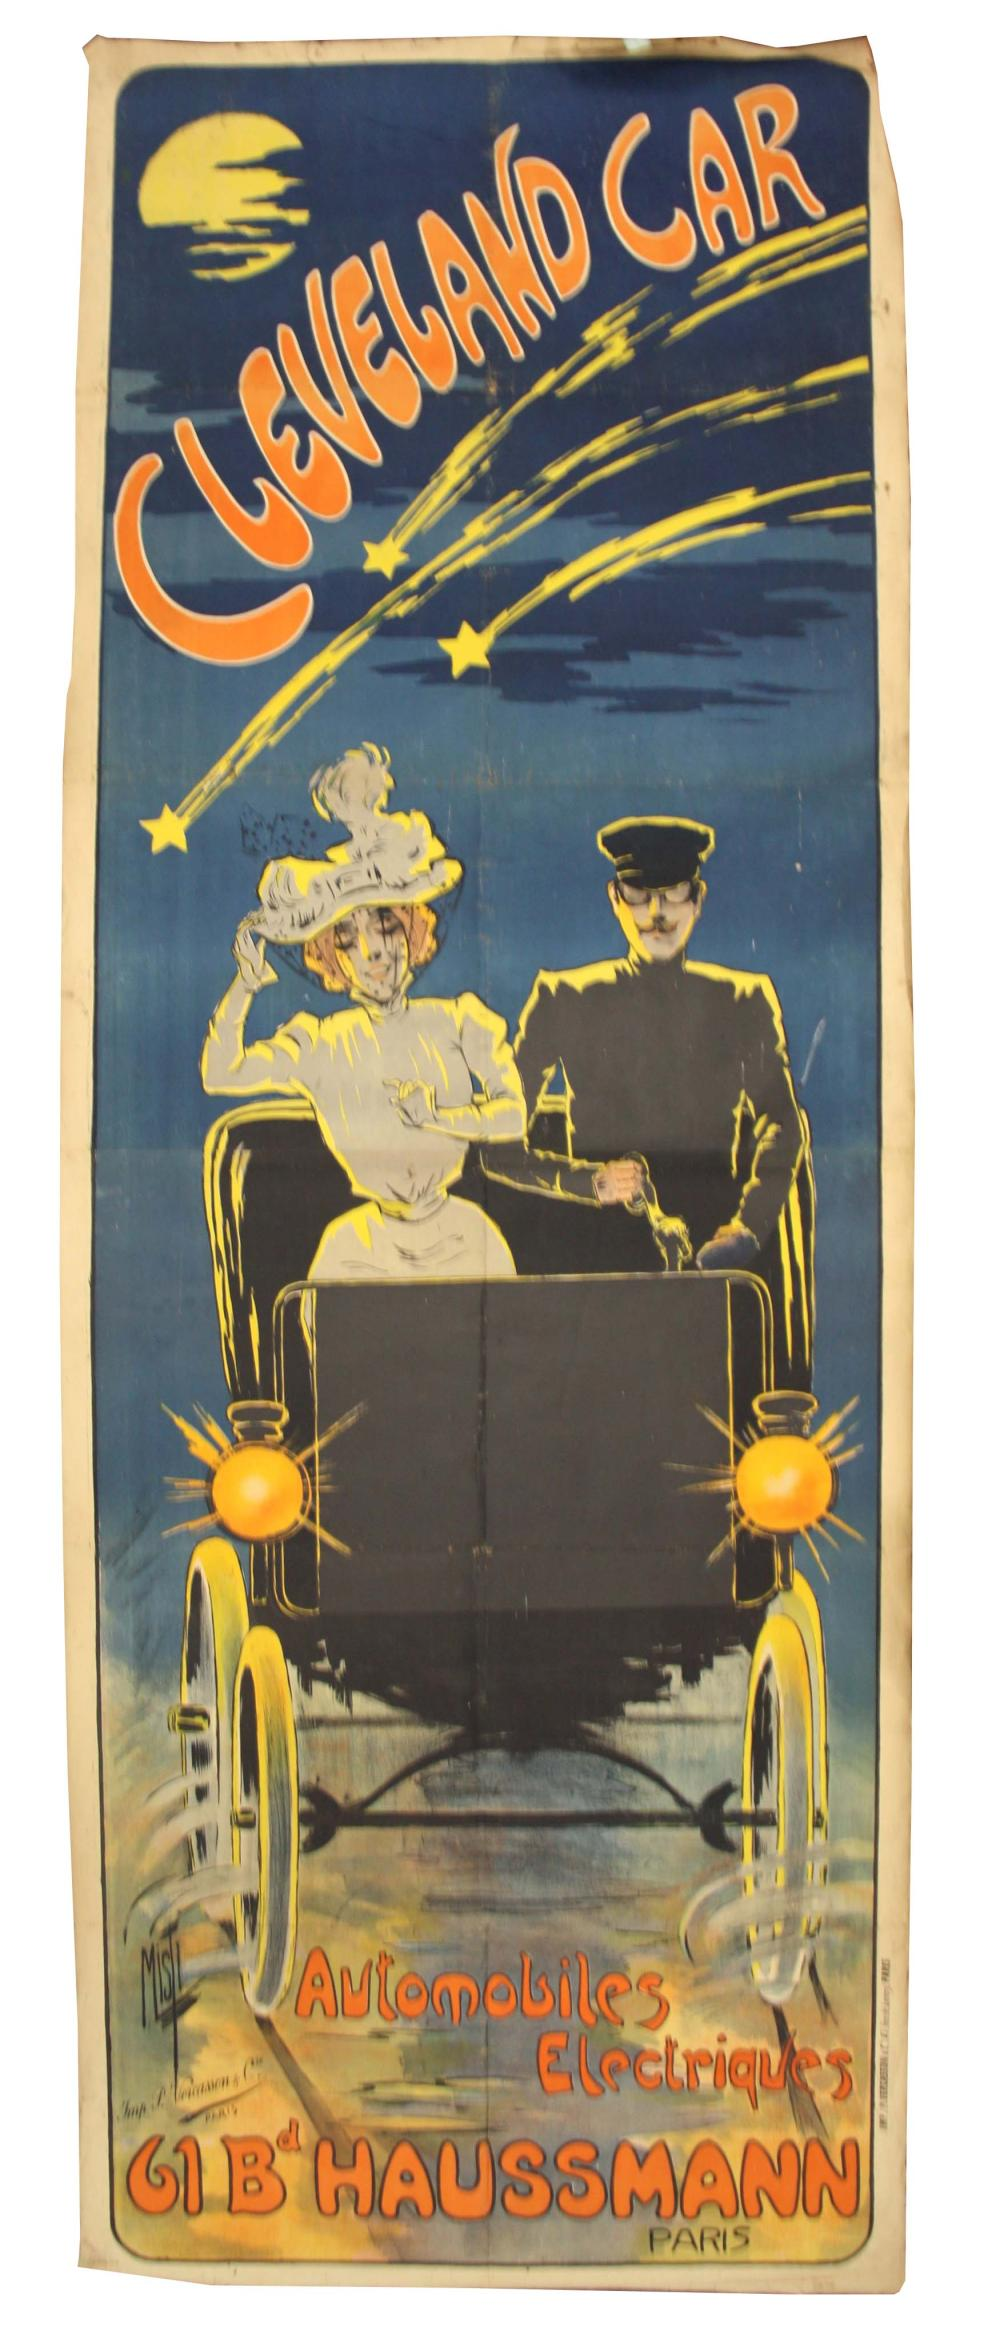 A VERY LARGE EARLY 20th CENTURY ADVERTISING POSTER